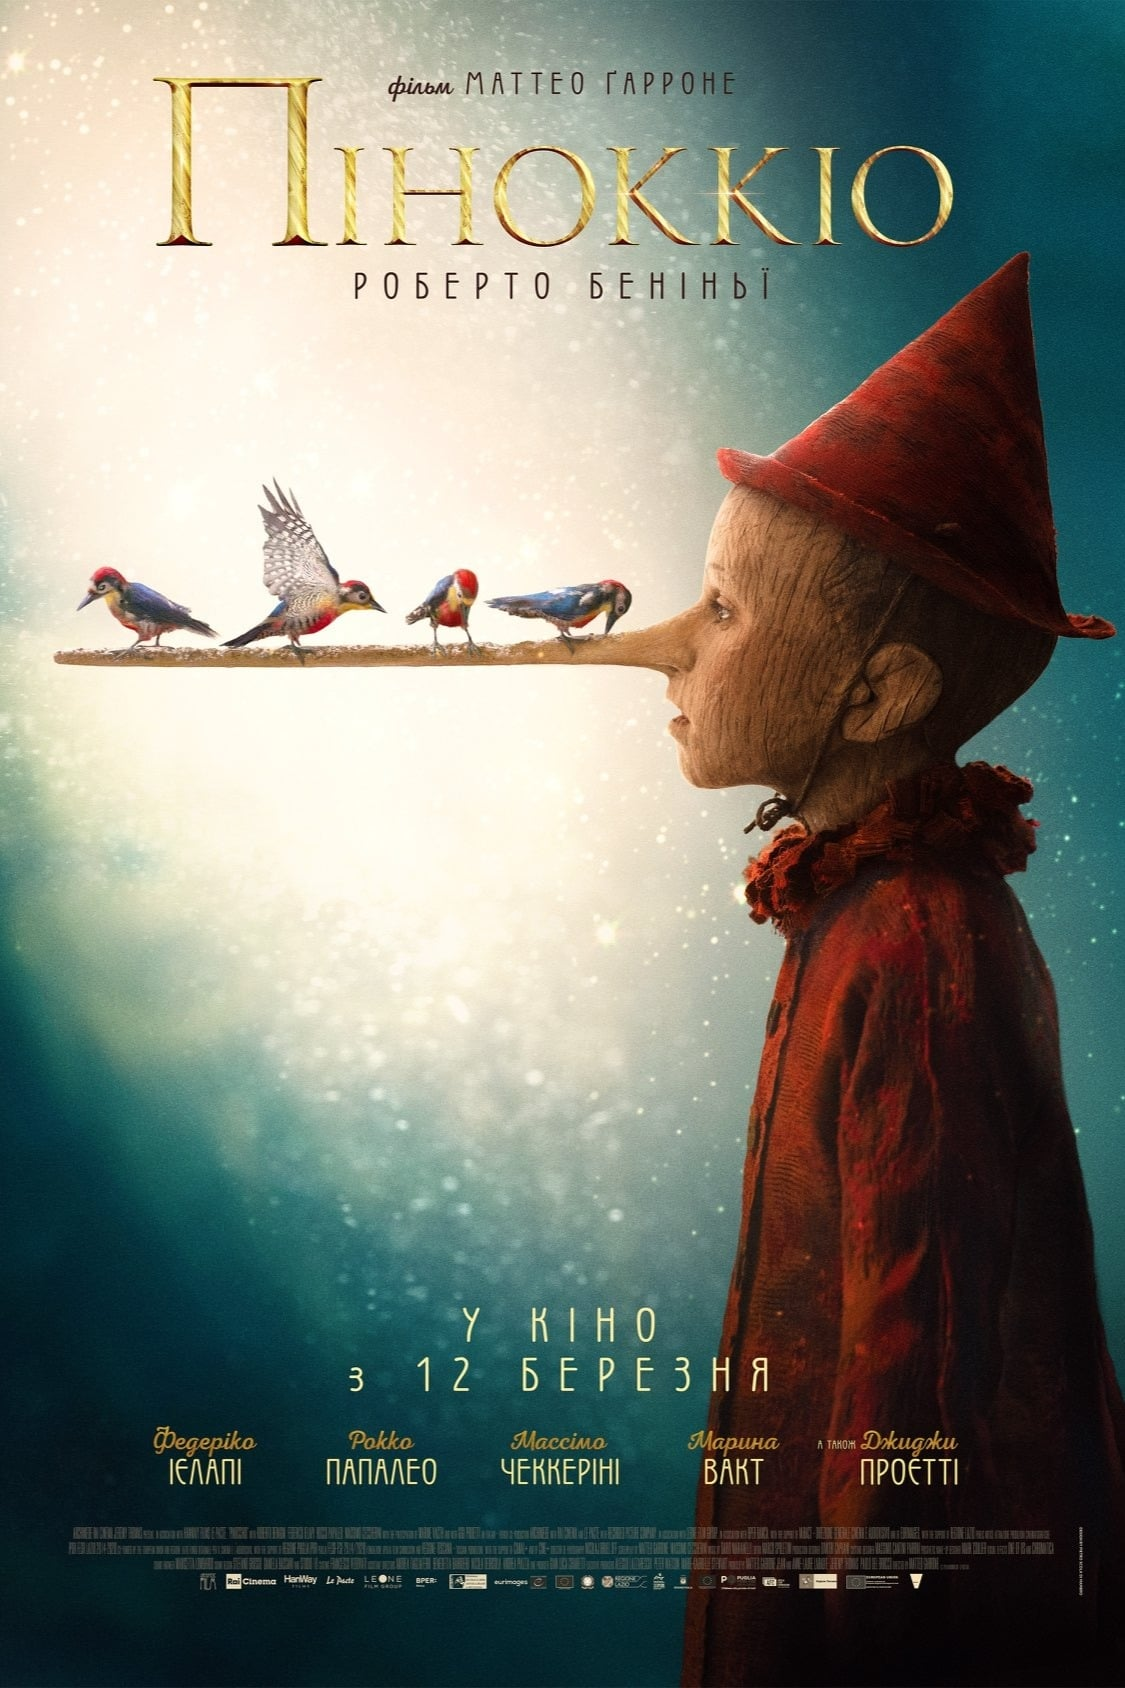 Poster and image movie Pinocchio